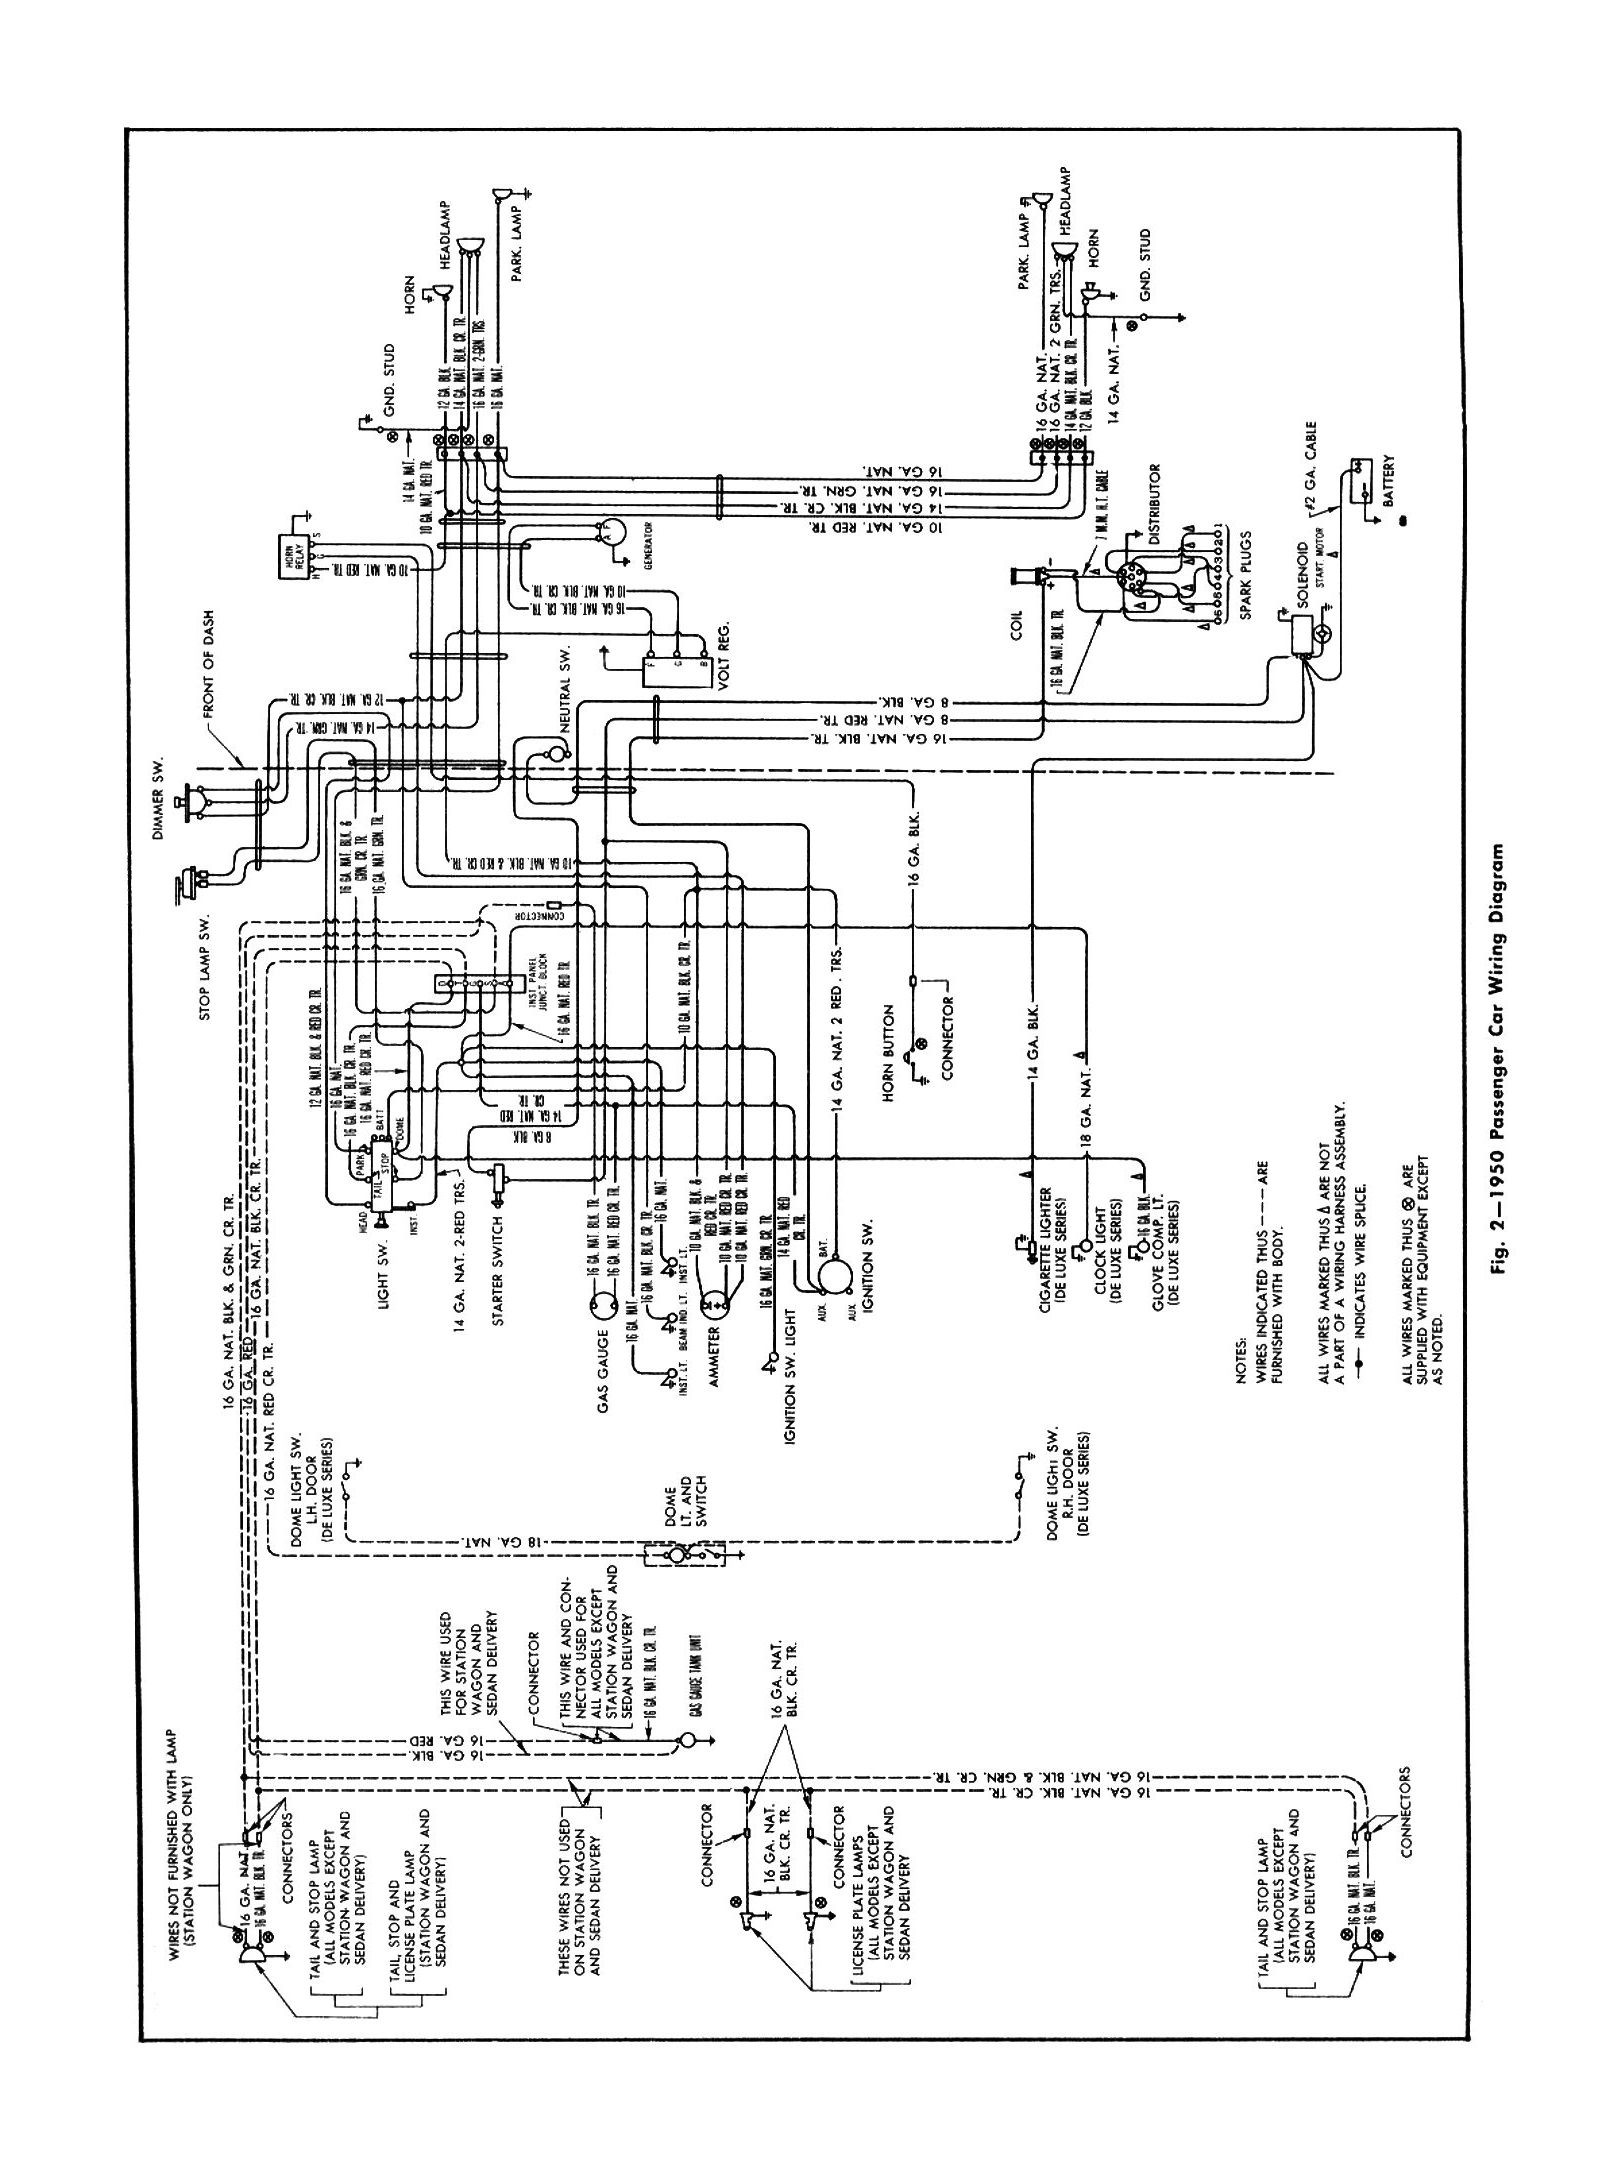 50car chevy wiring diagrams Chevy Truck Wiring Diagram at cos-gaming.co